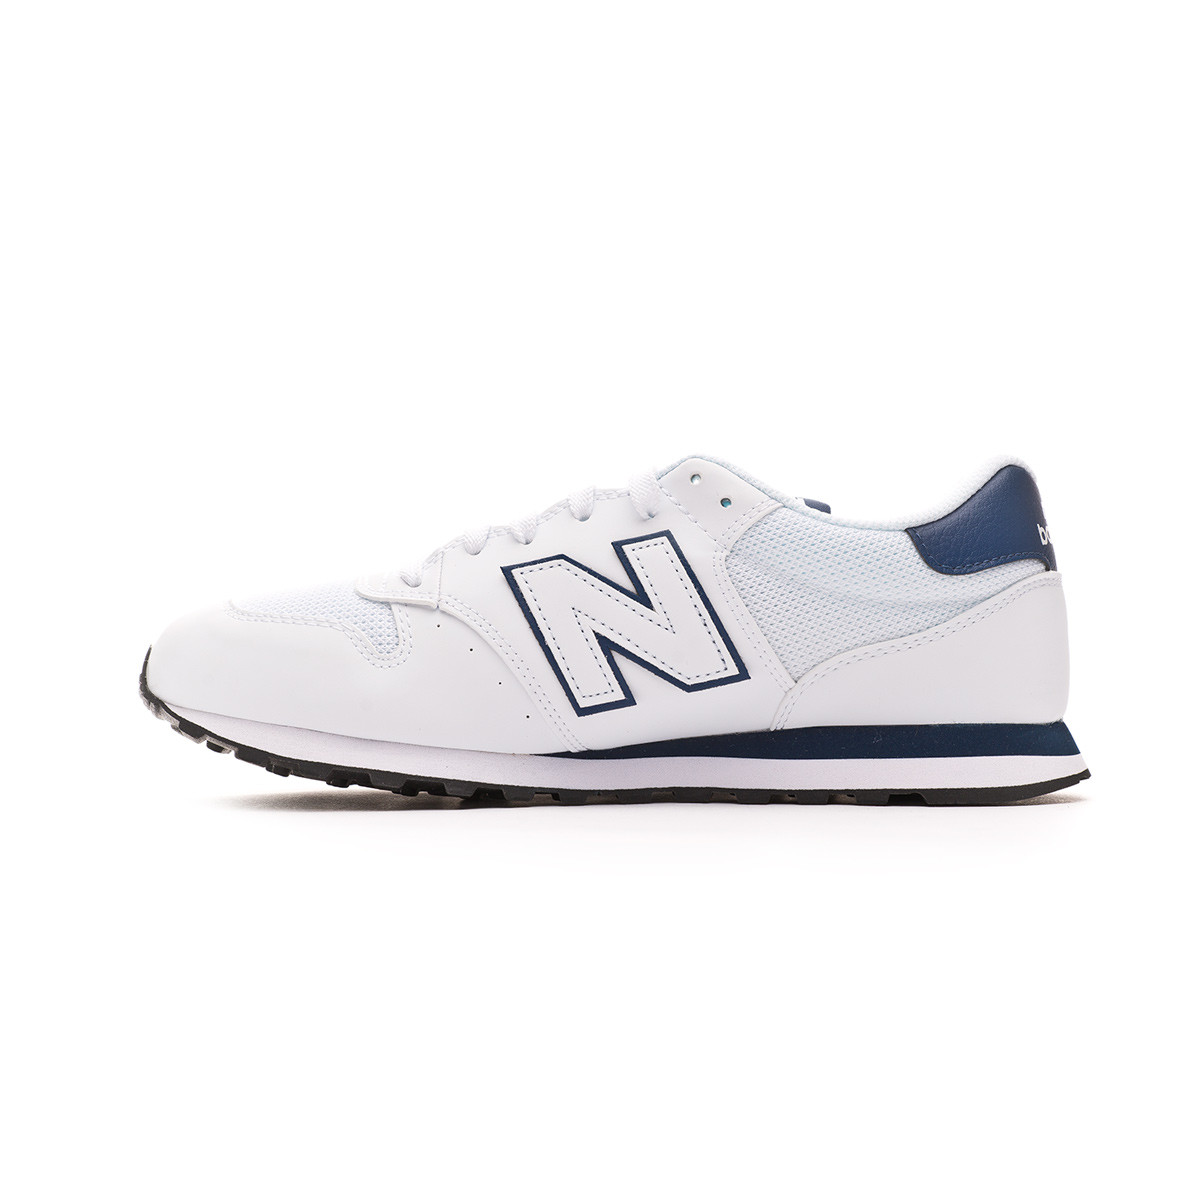 b417ef8cceea6 Trainers New Balance 500 White - Football store Fútbol Emotion